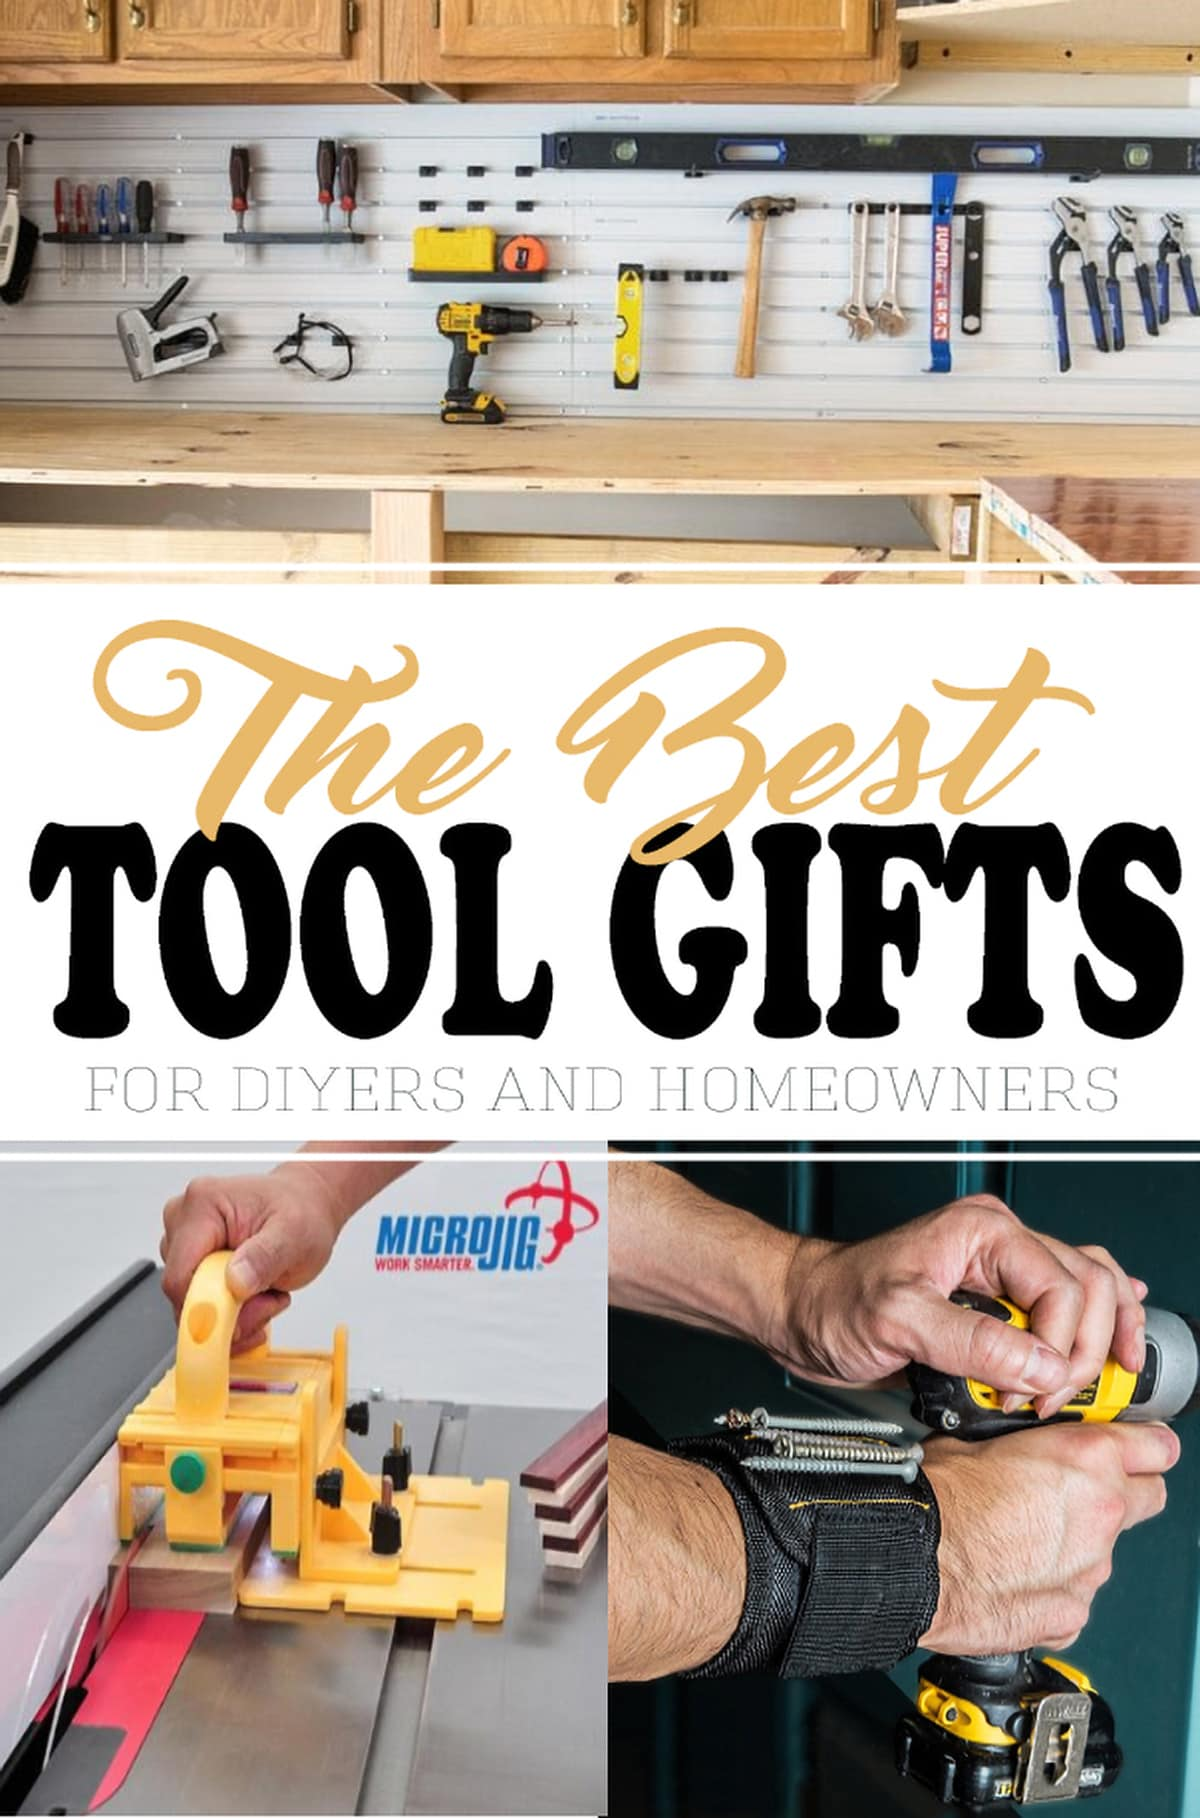 Gift Ideas for homeowners, handyman, and DIYers. Our community of DIYers put together